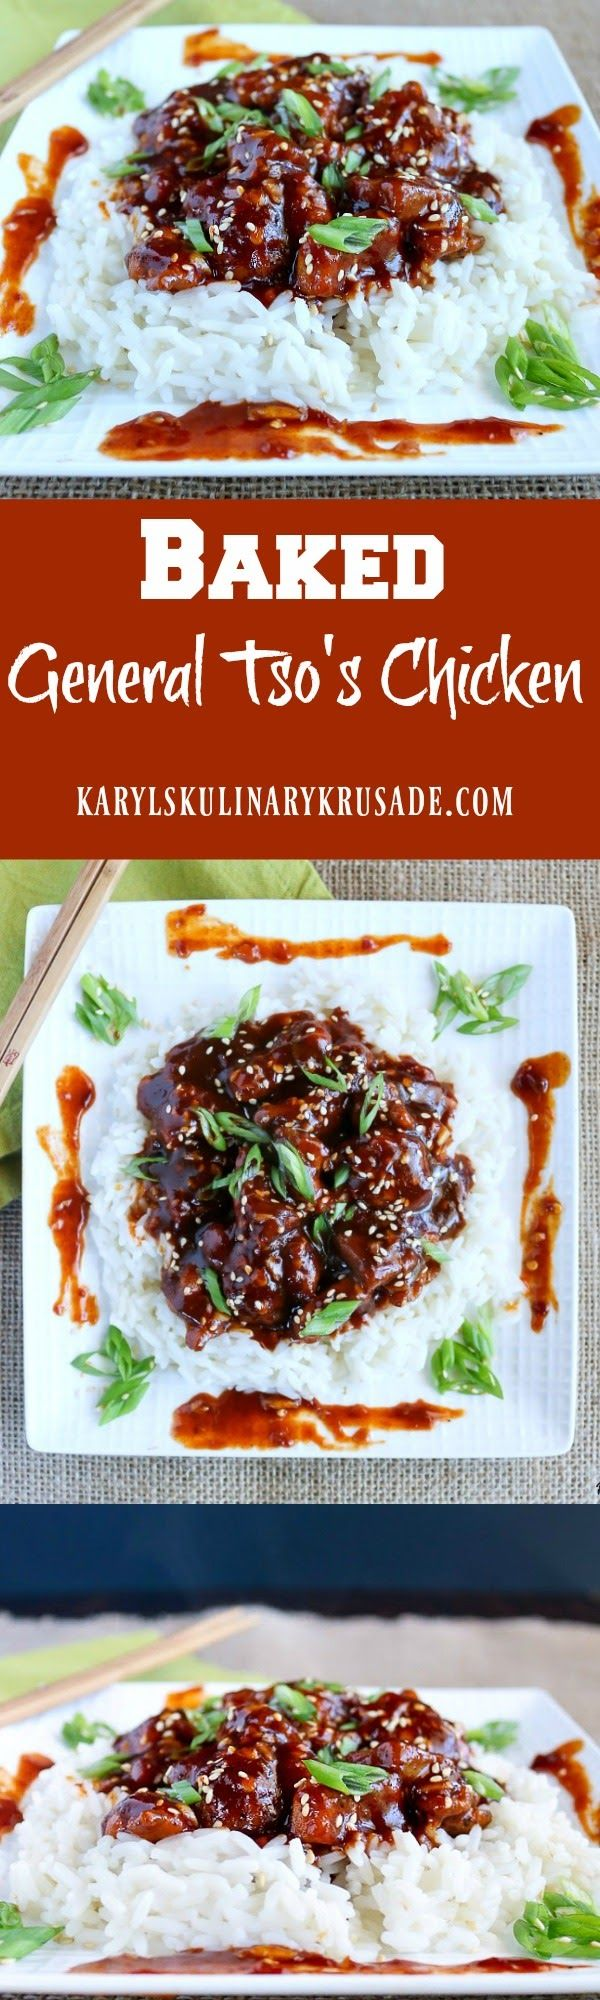 Skip the takeout and make Baked General Tso's Chicken at home instead! Yes, this chicken is baked, and saves a lot of fat and calories. But you won't miss out on any of the spice or the wonderful flavors of this traditional Asian restaurant dish